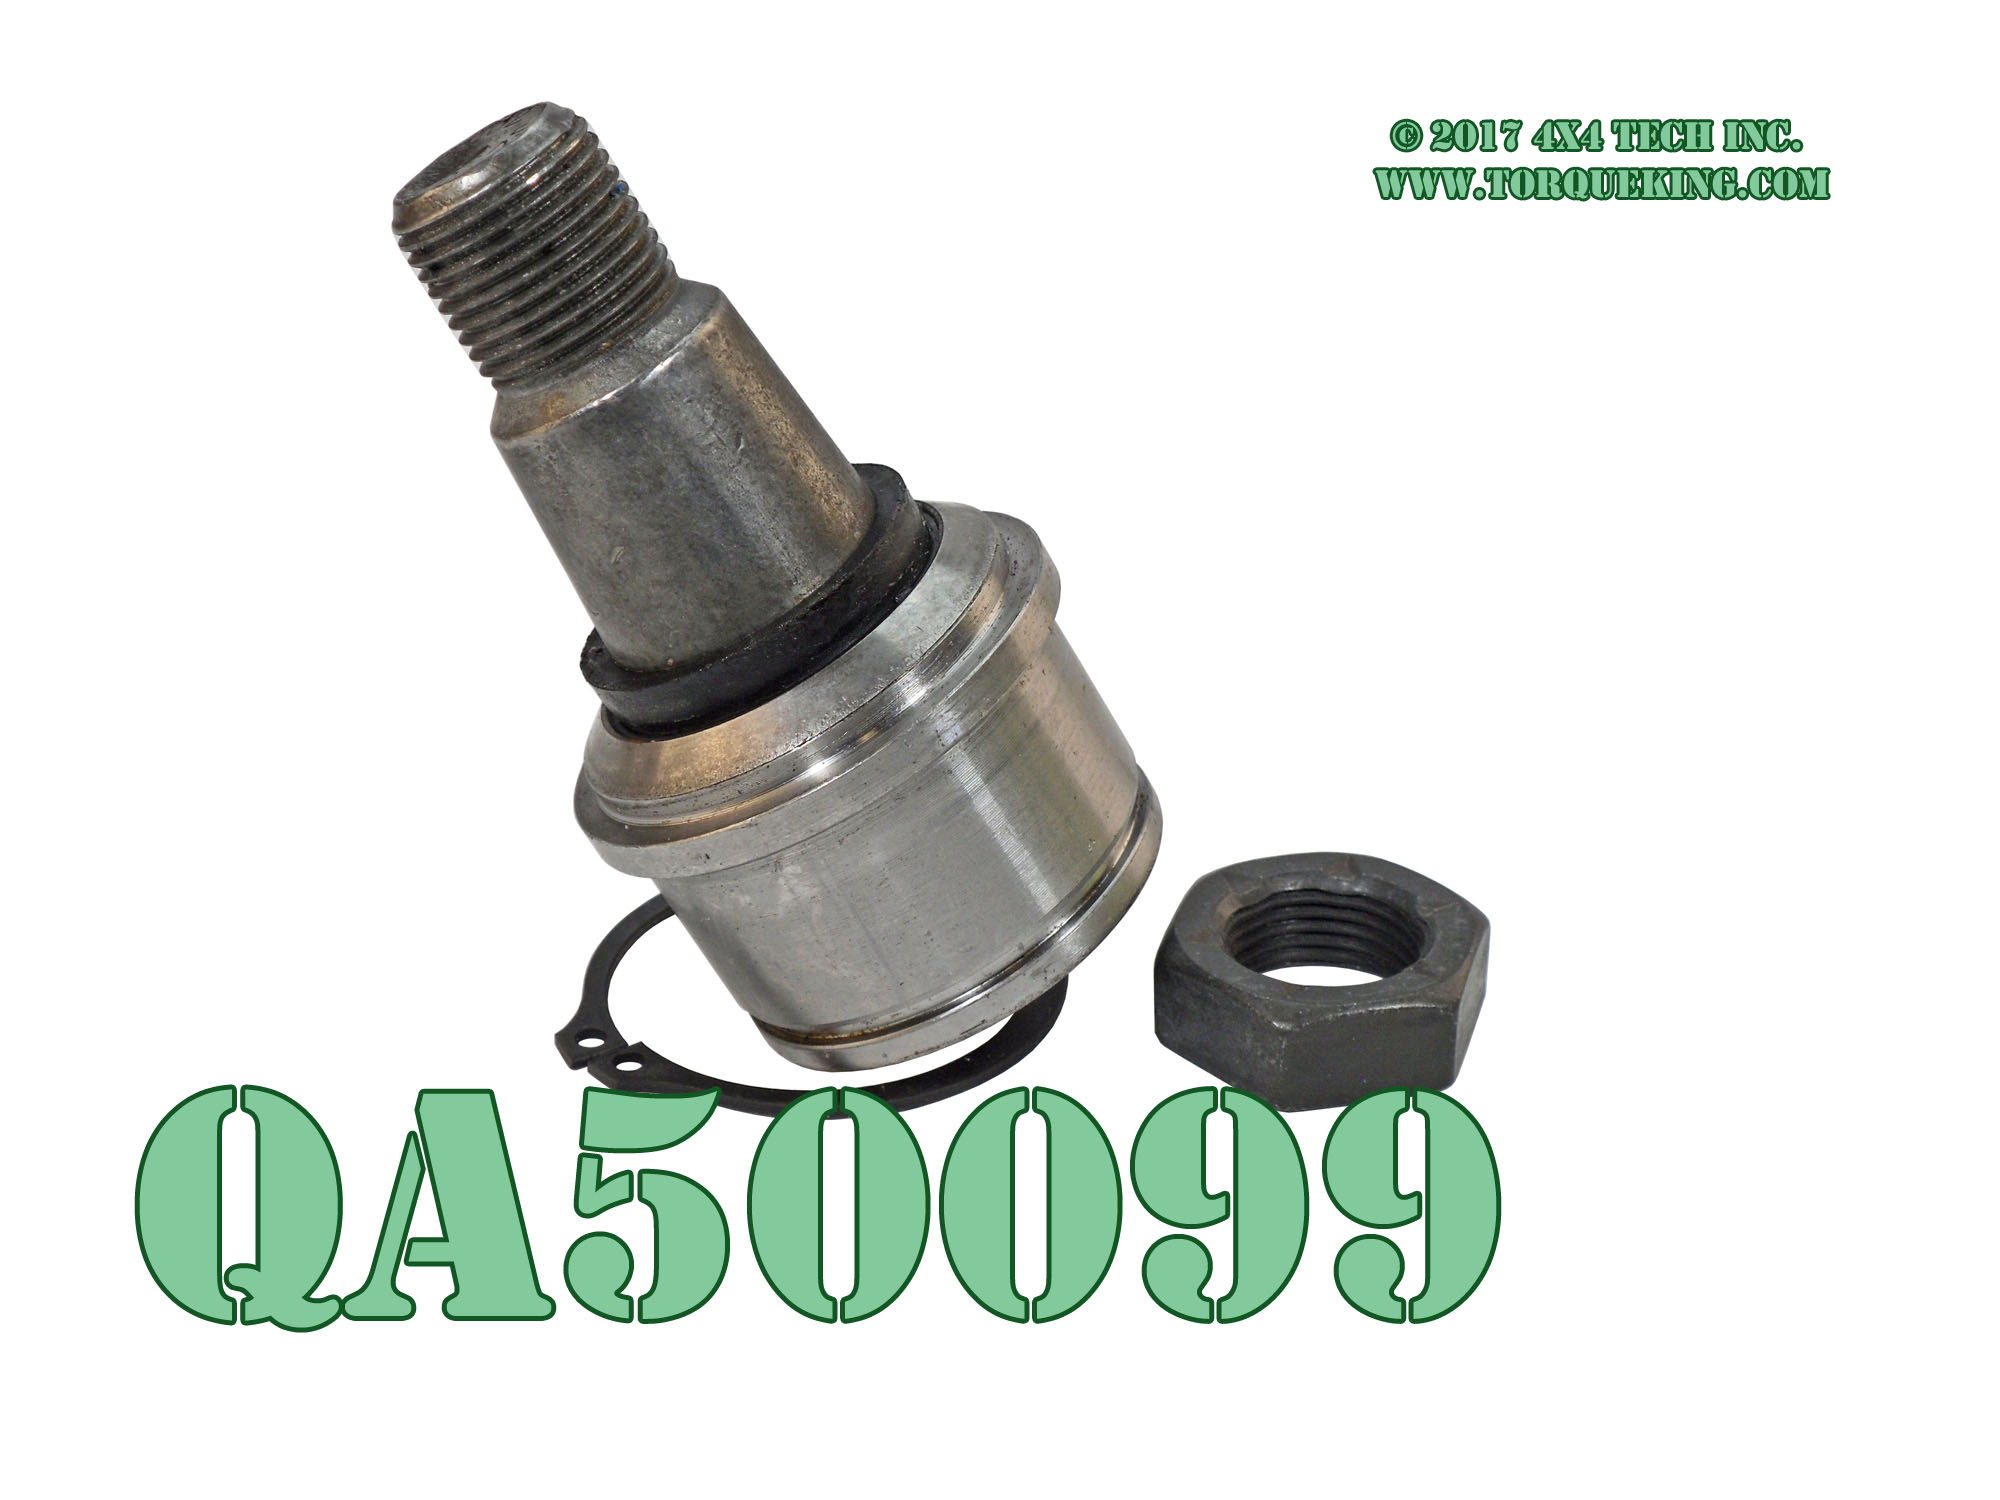 Qu50099 torque king 4x4 for Dana motors billings mt